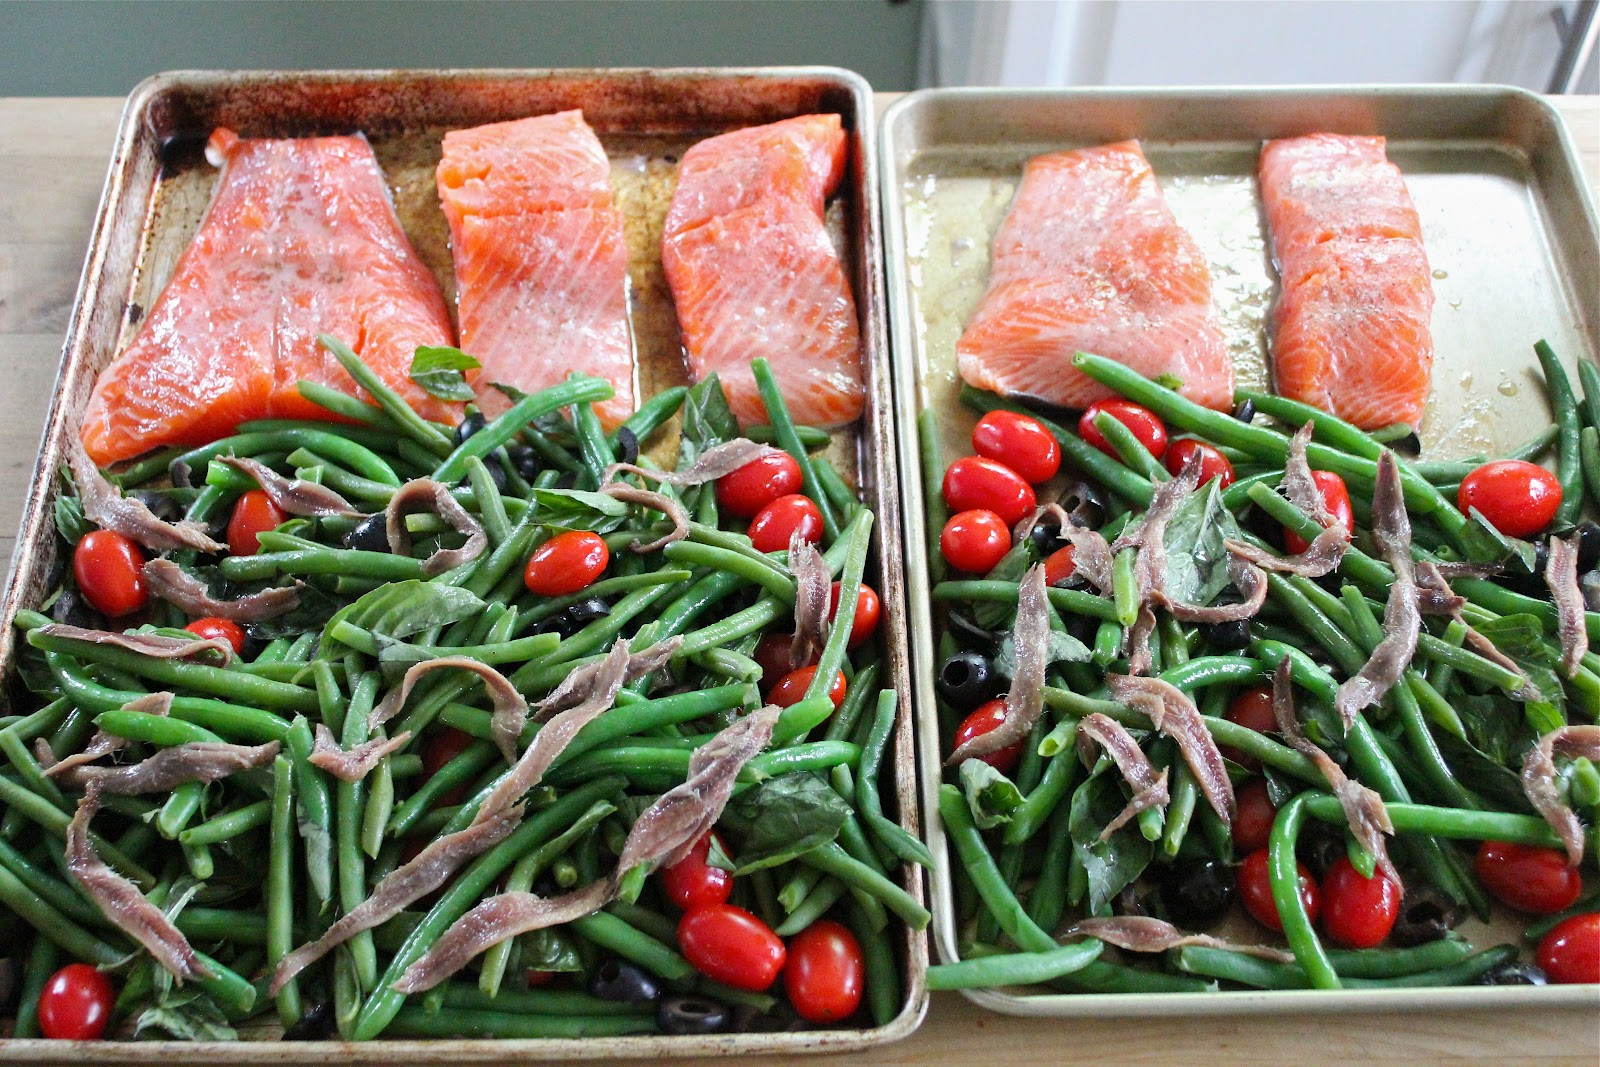 Jamie olivers tray baked salmon with veggies eat good 4 life jamie olivers tray baked salmon with veggies ccuart Image collections